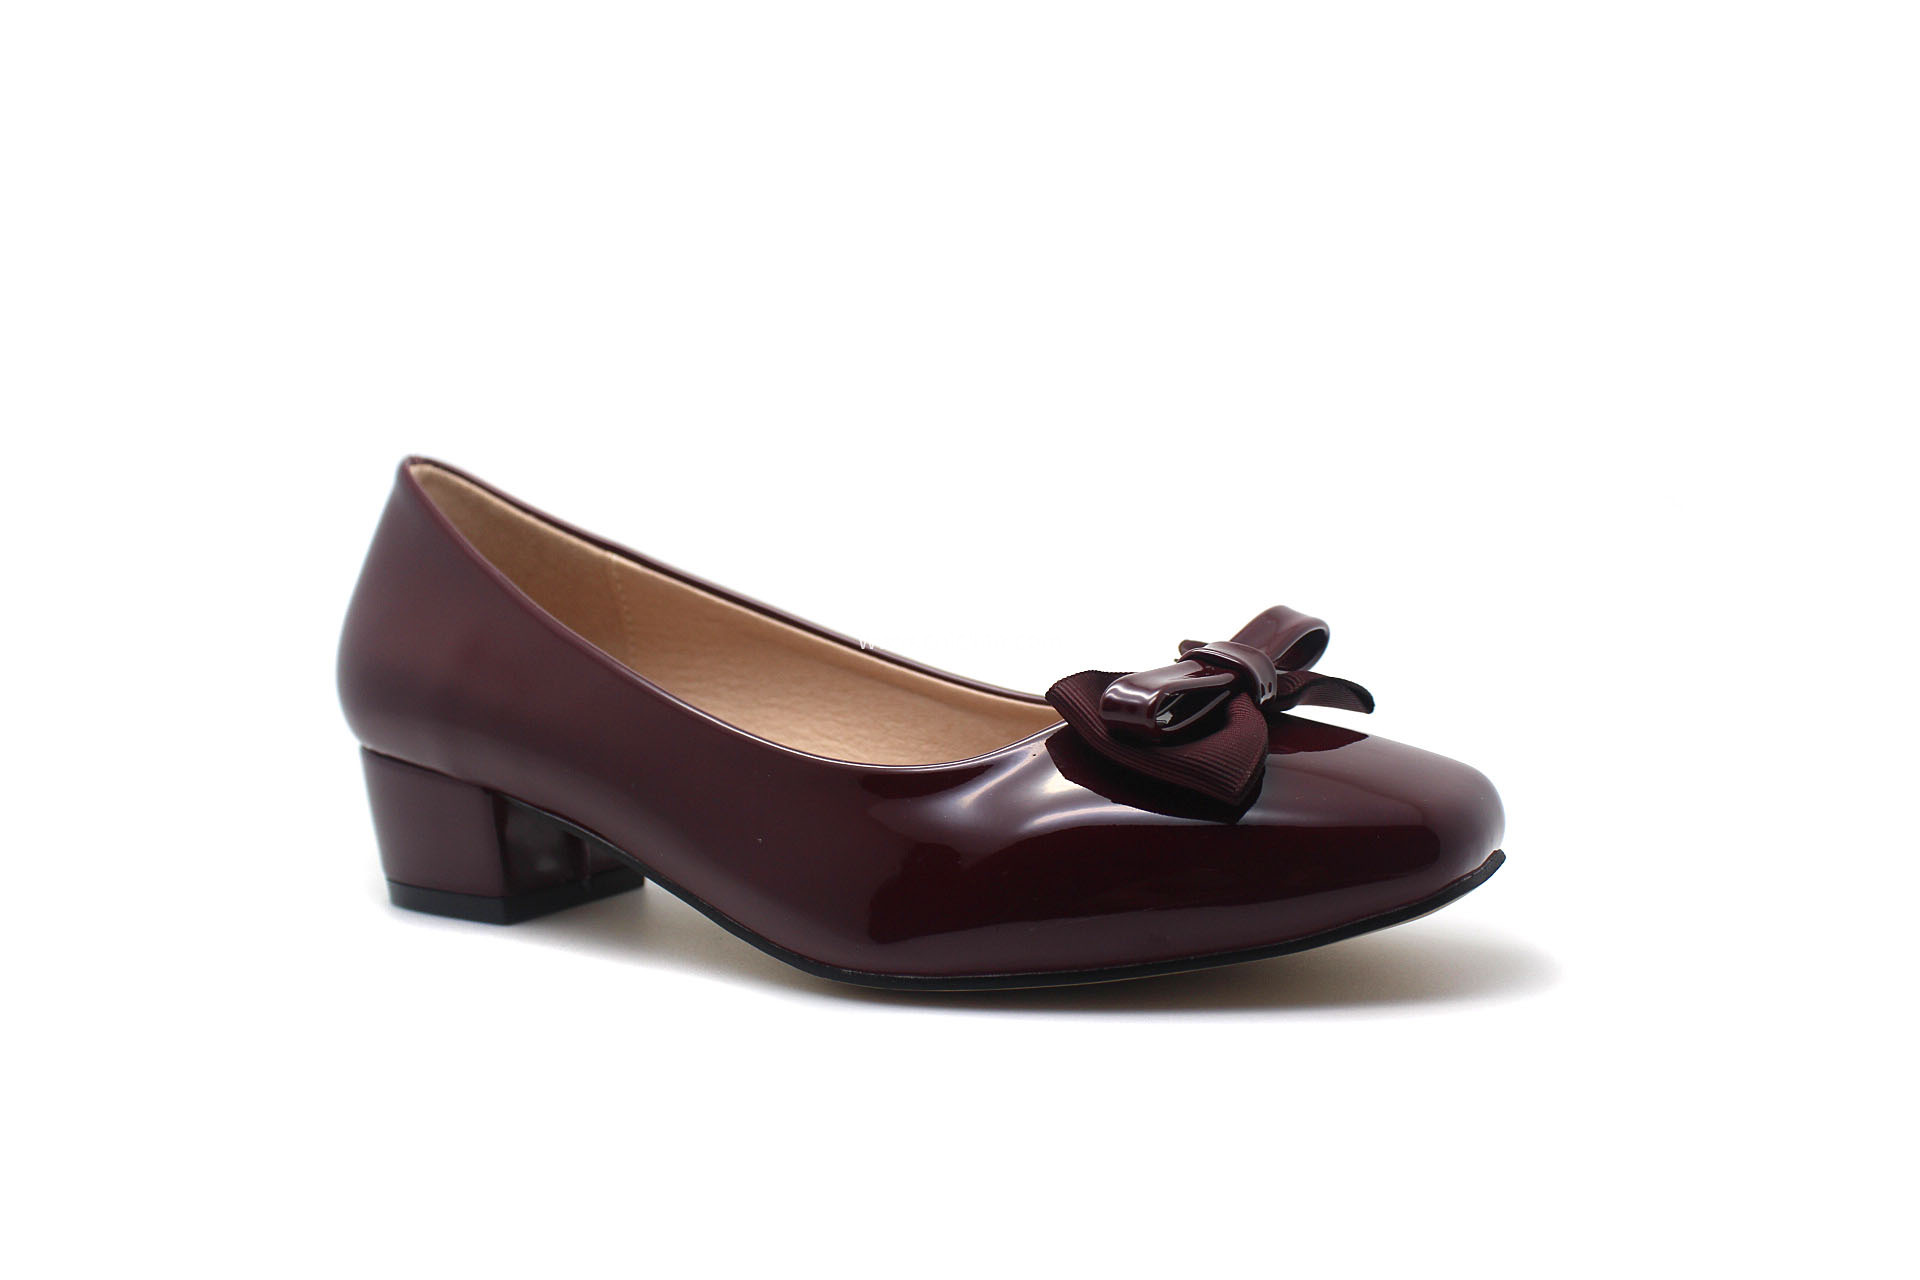 Ladies heel shoes, Office lady shoes